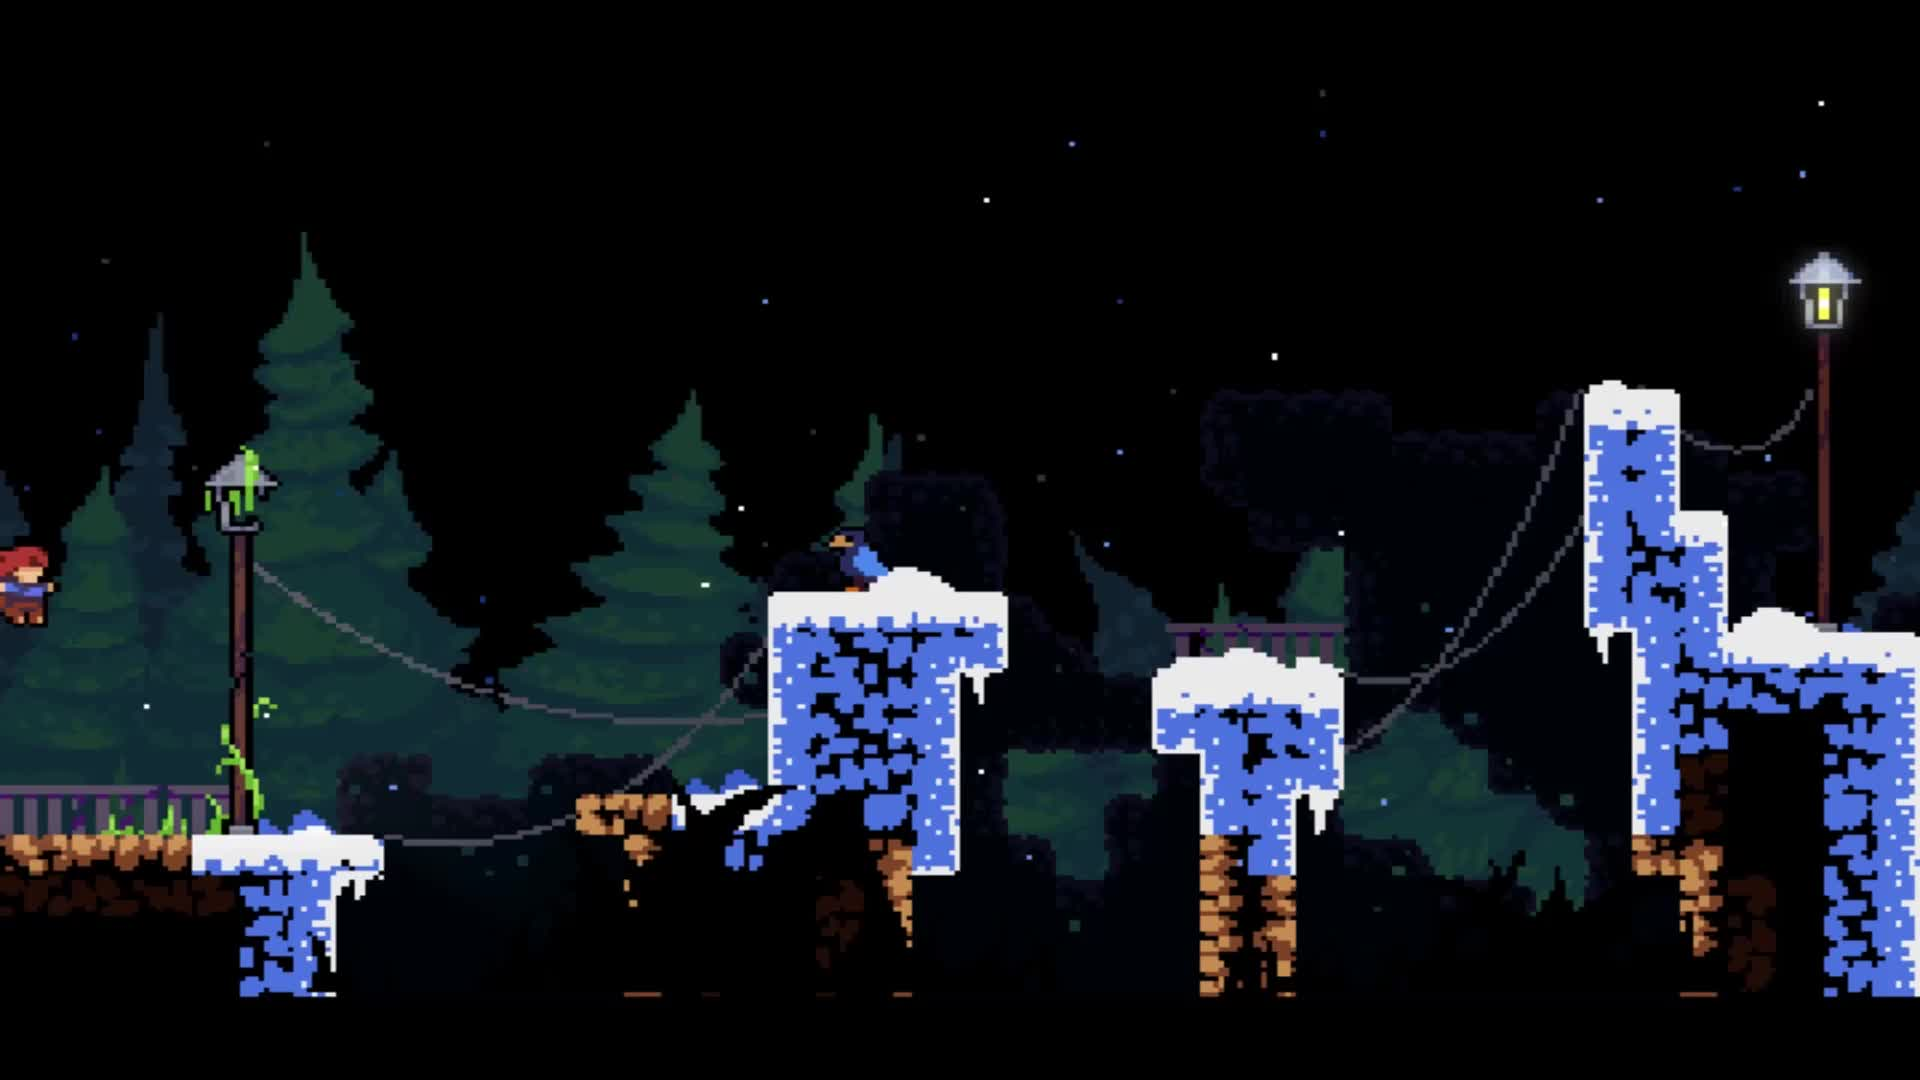 celeste, celeste classic, celeste trailer, direct feed, footage, gameplay, hands-on, lets play, matt thorson, mattmakesgames, moneyseize, no commentary, pico-8, speedrun, successor, towerfall, towerfall 2, towerfall sequel, videogames, xbox one, Exclusive: 10 Minutes of CELESTE Gameplay — TOWERFALL Creators' Next Game! GIFs